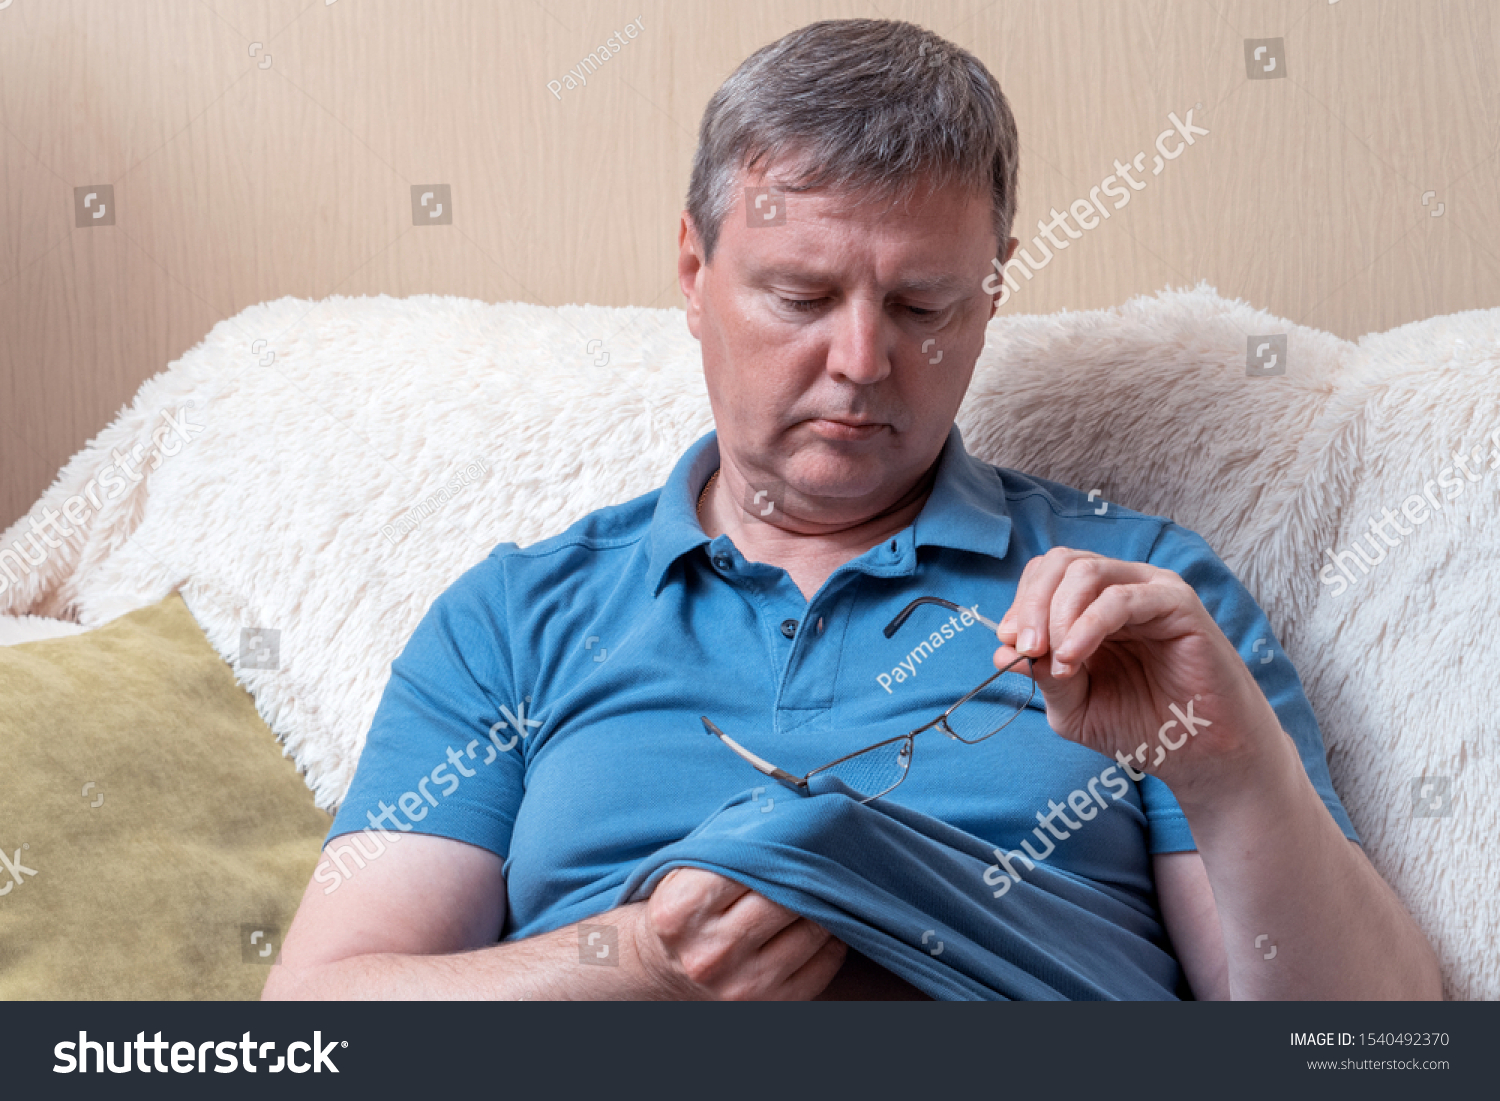 Portrait man cleaning glasses with a t-shirt #1540492370